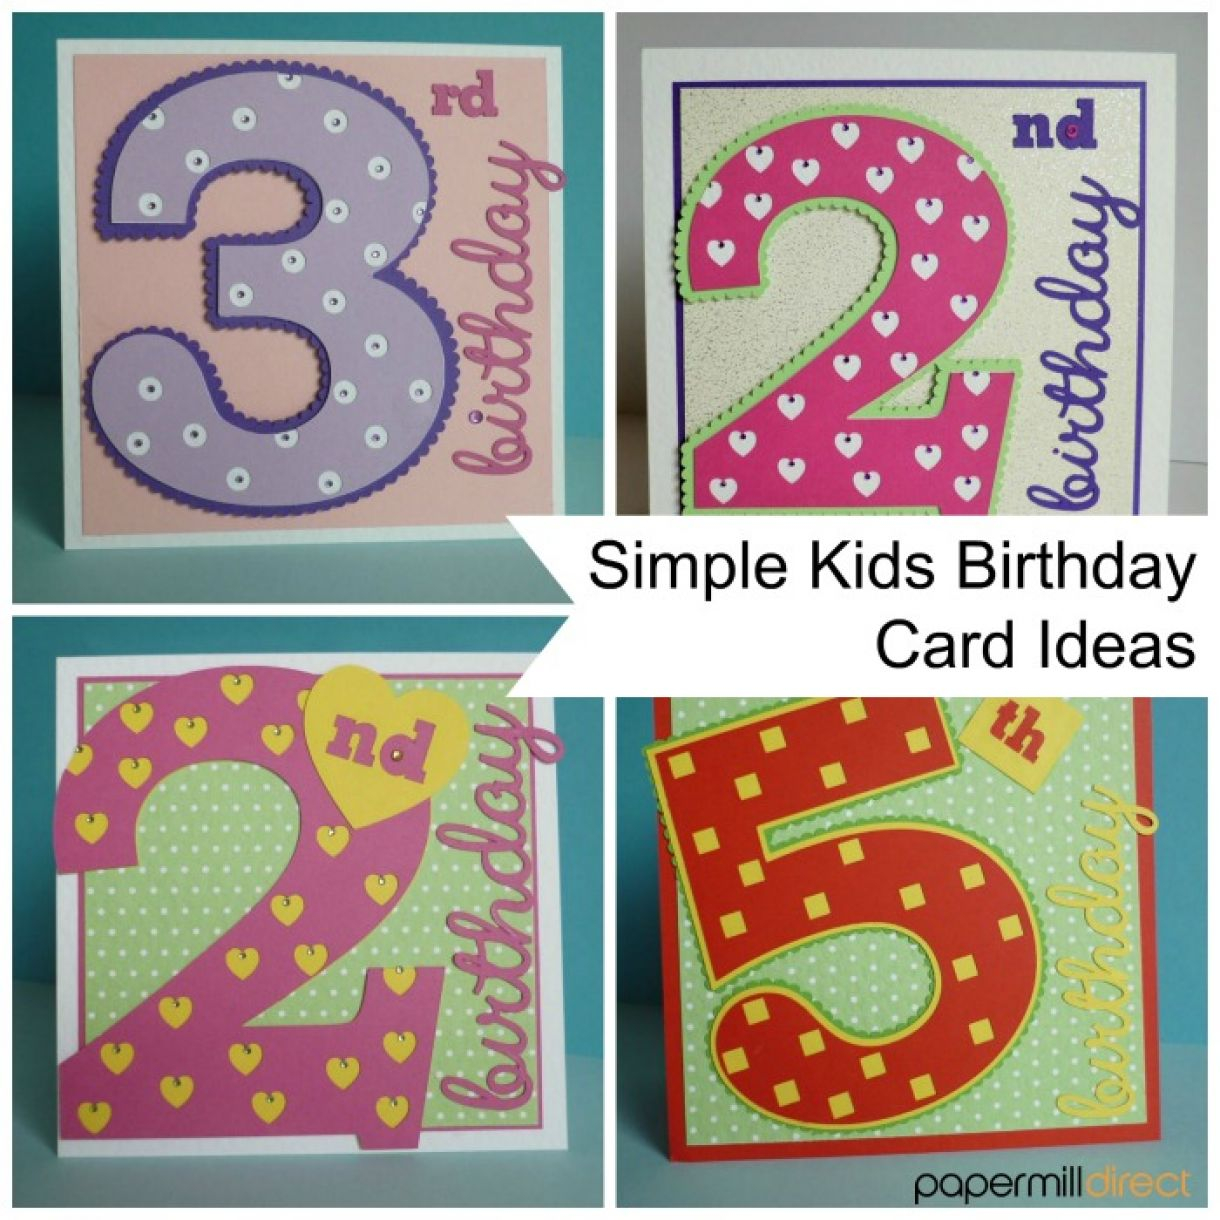 Easy Birthday Card Ideas For Kids Project Simple Kids Age Cards